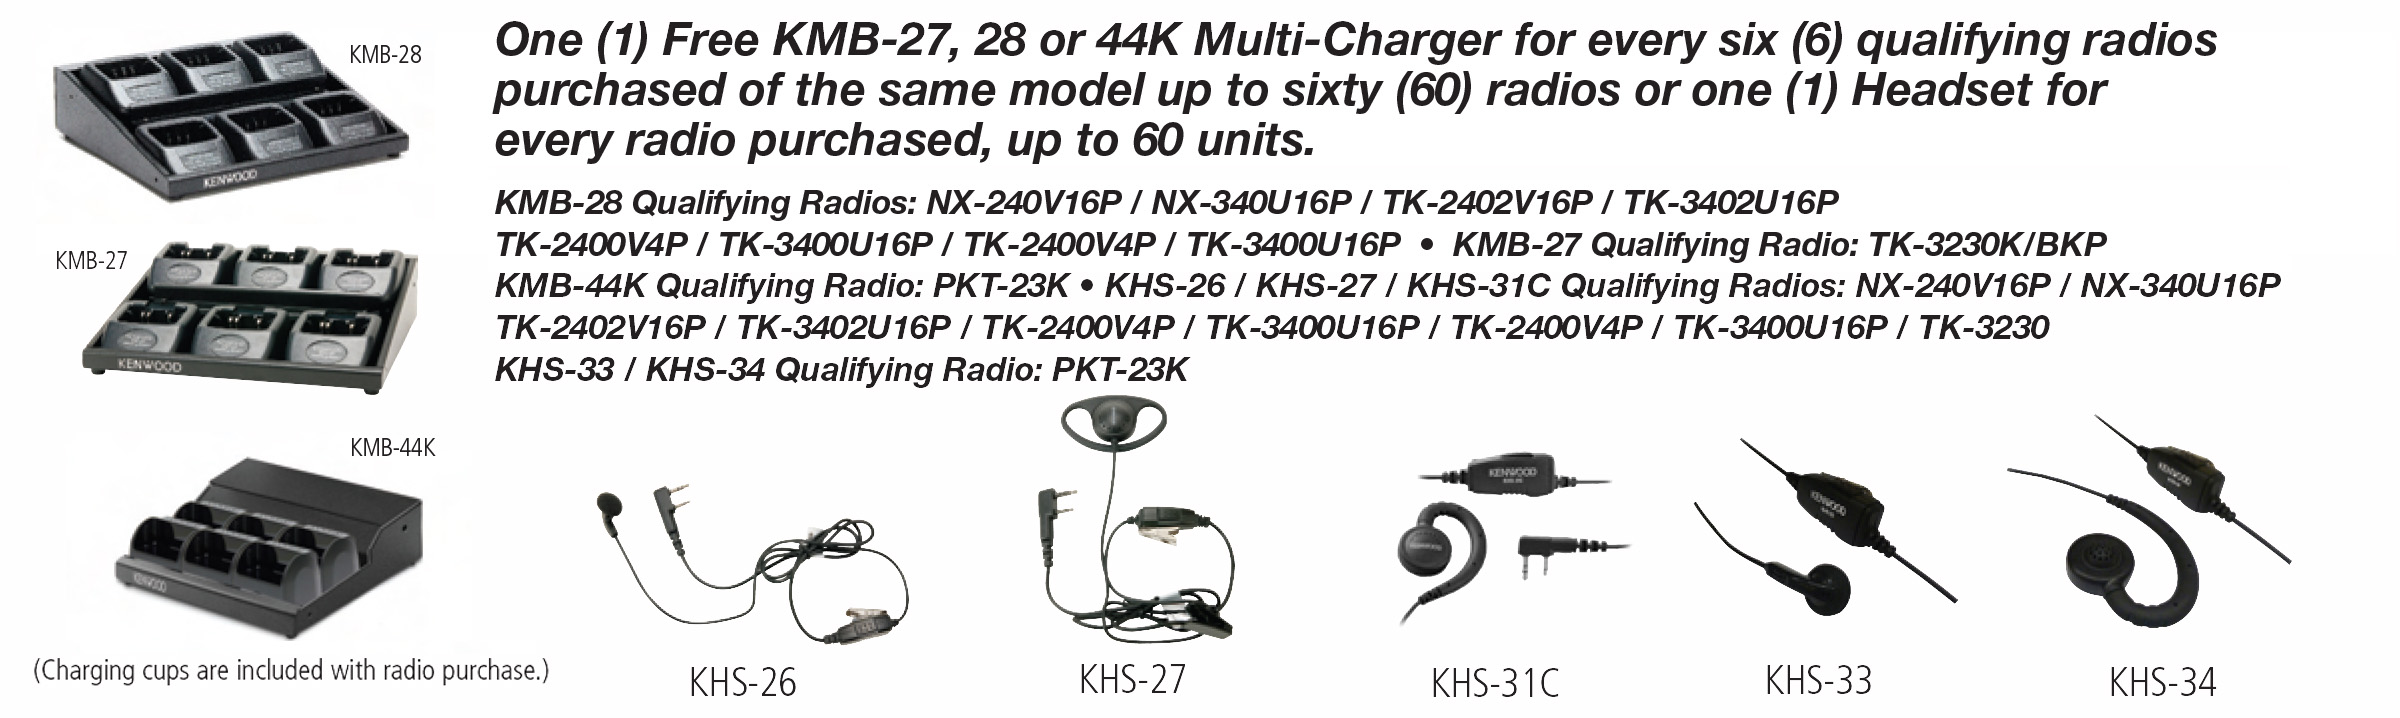 Kenwood Rebate Charger Earpiece Options